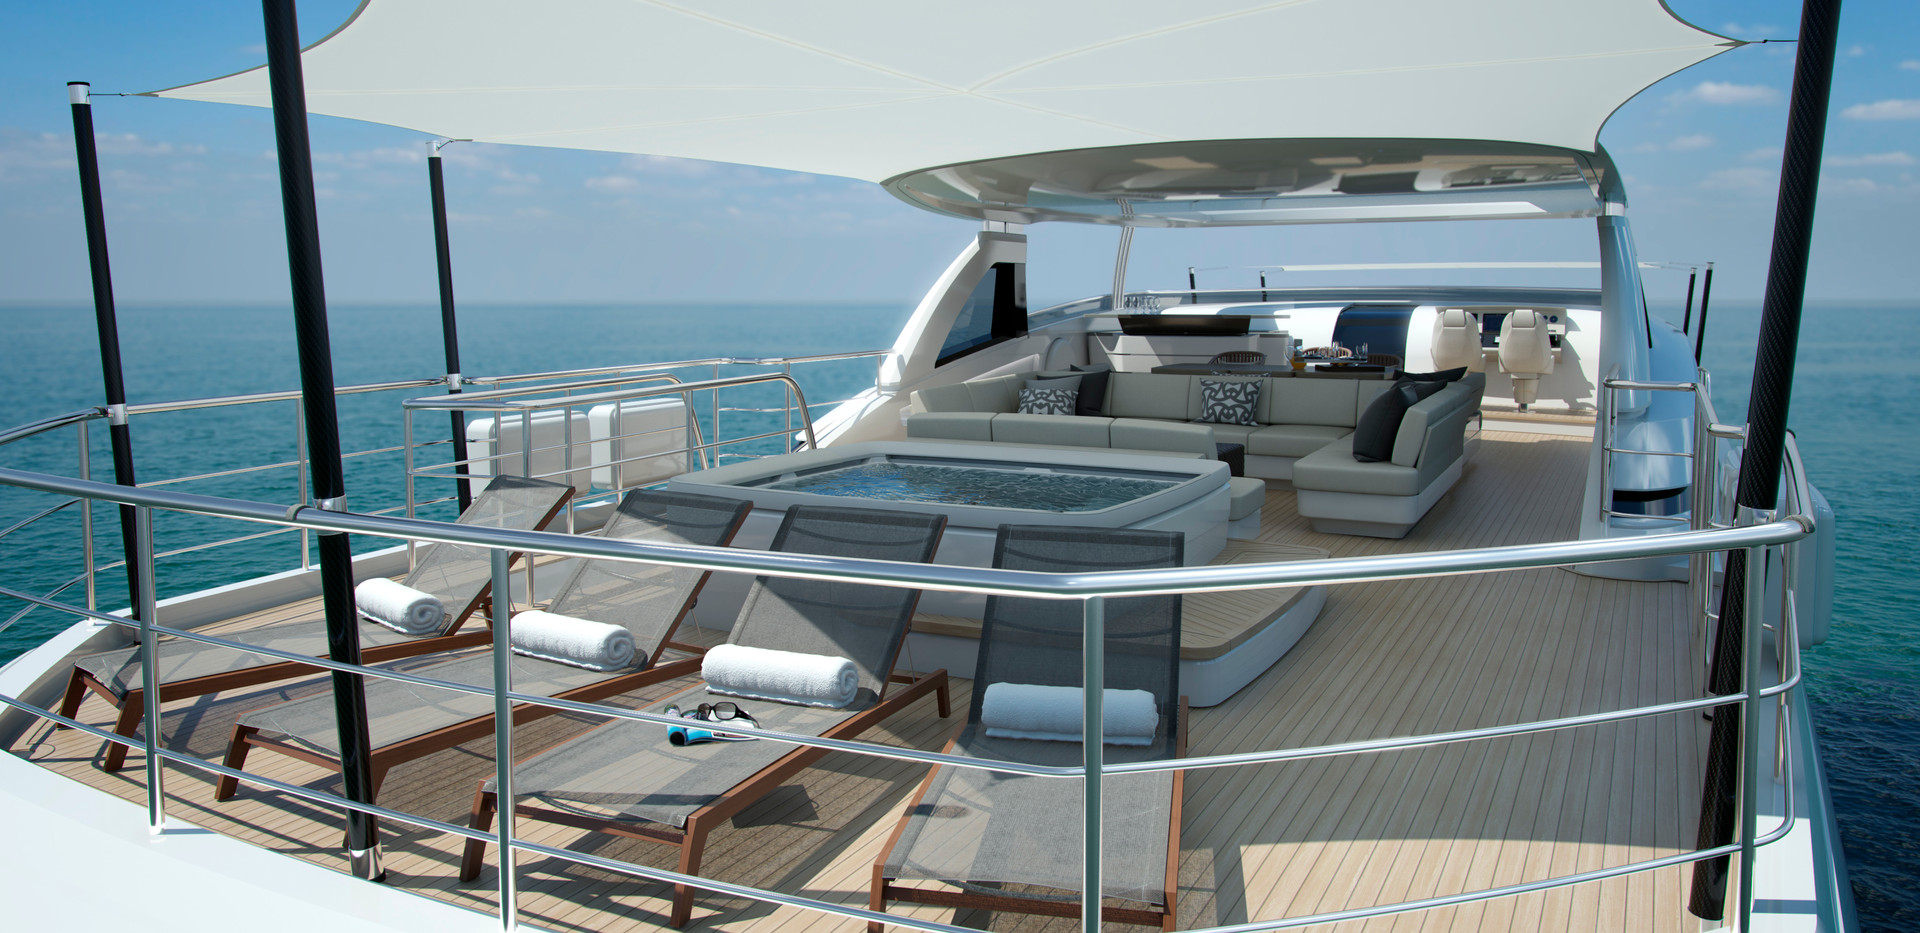 35m-exterior-flybridge-with-awning-1Yach